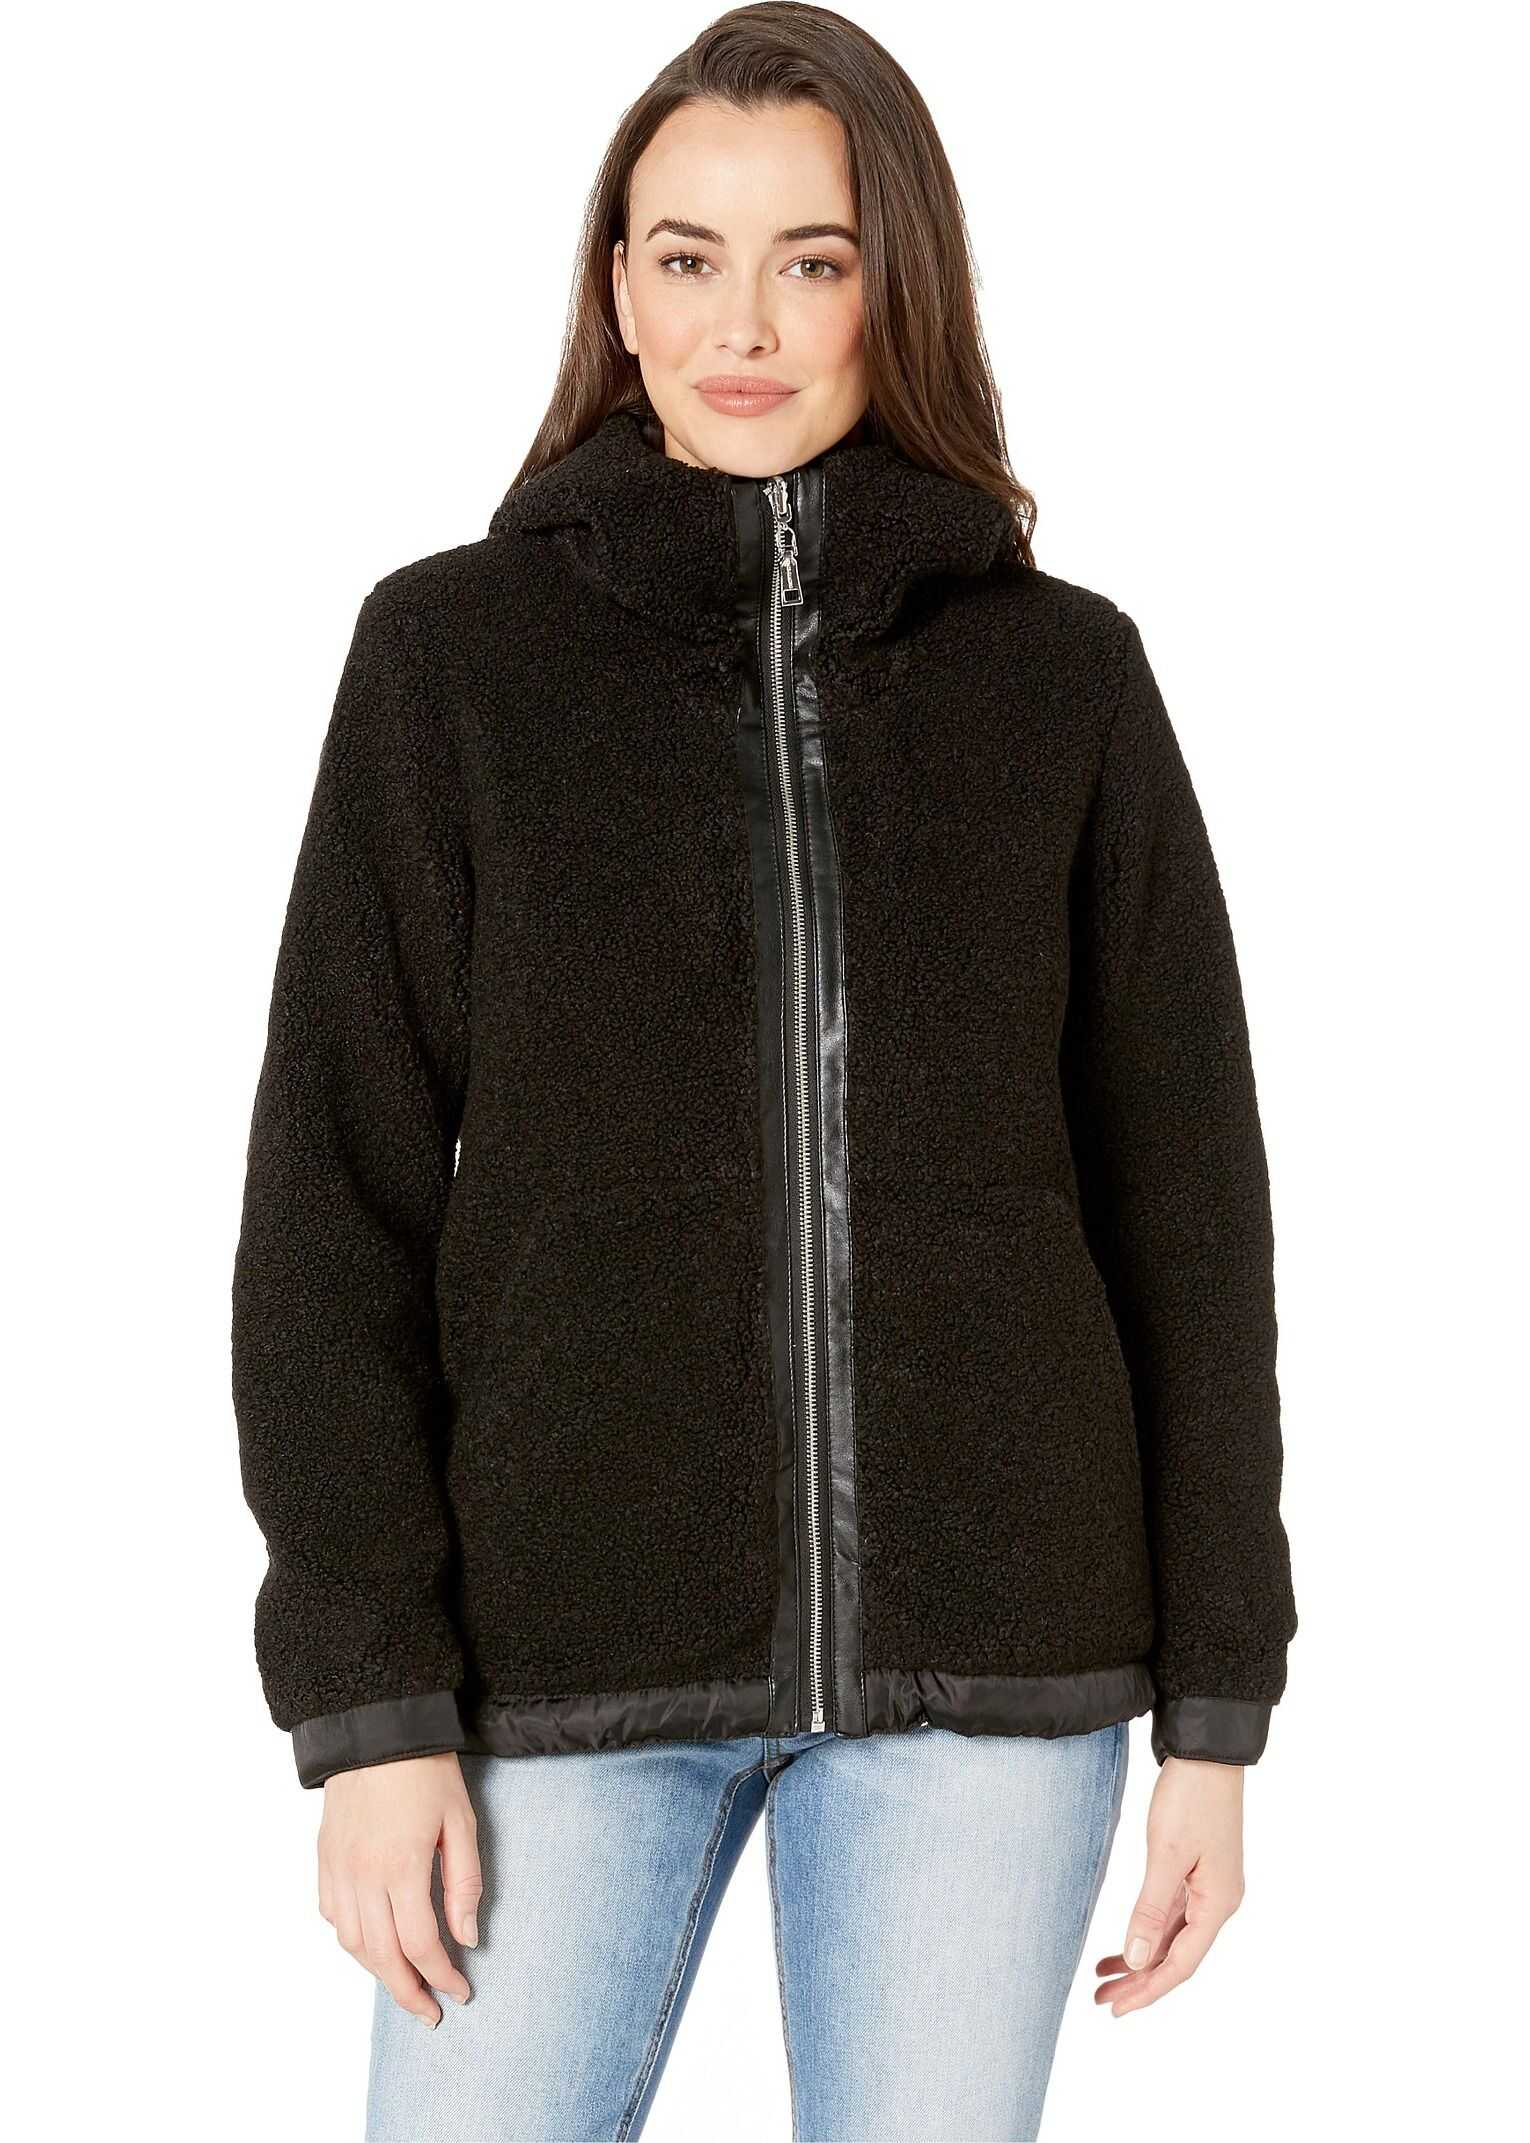 Vince Camuto Hooded Faux Shearling Jacket R8971 Black